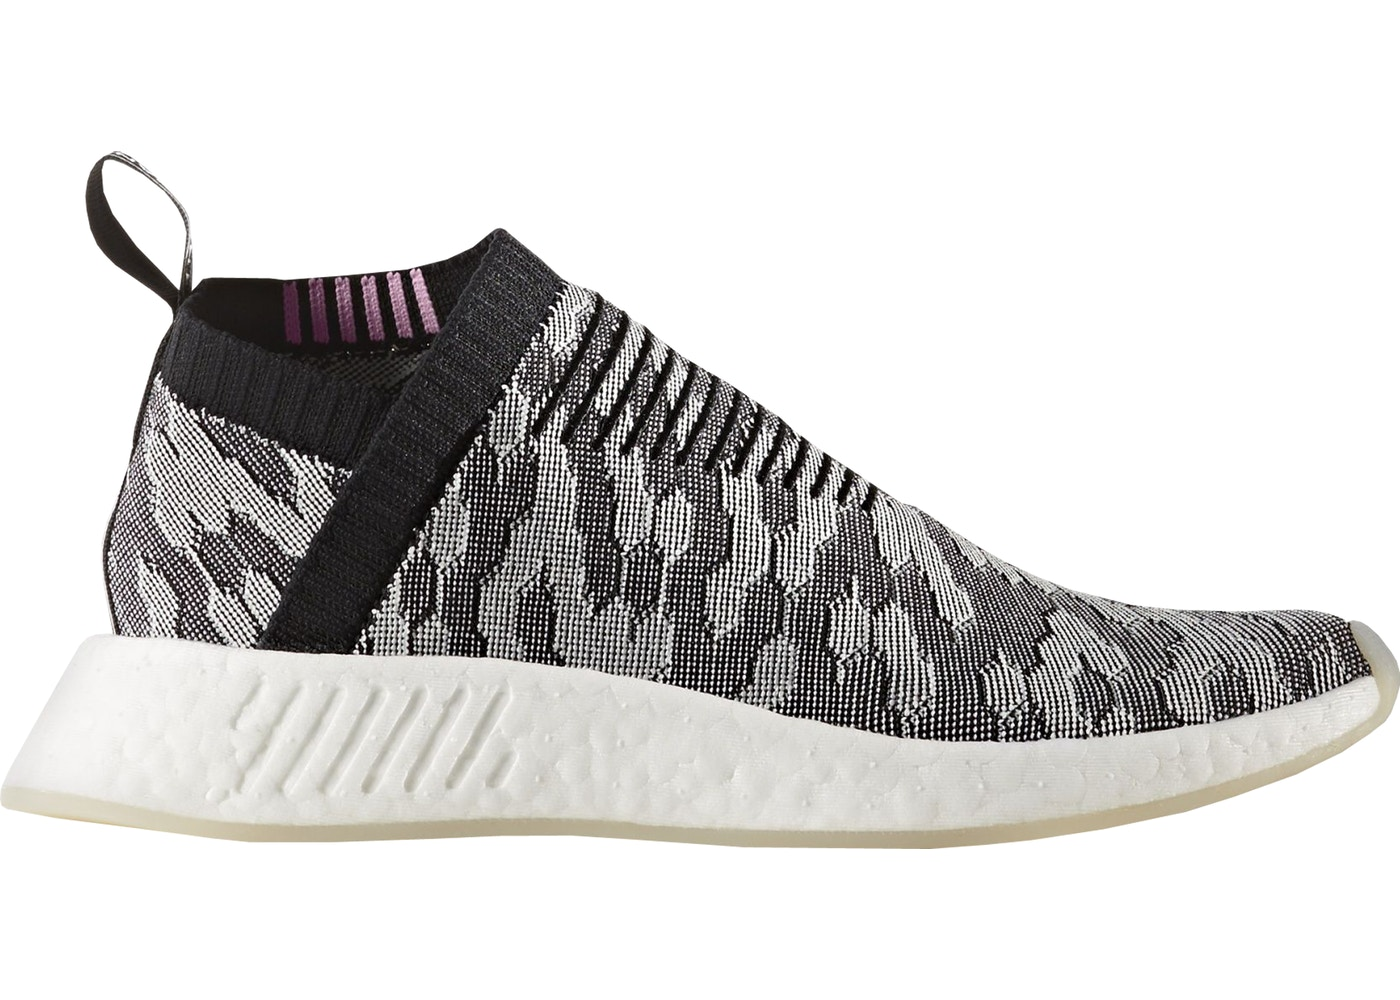 5c16e6255 Buy adidas NMD CS2 Shoes   Deadstock Sneakers